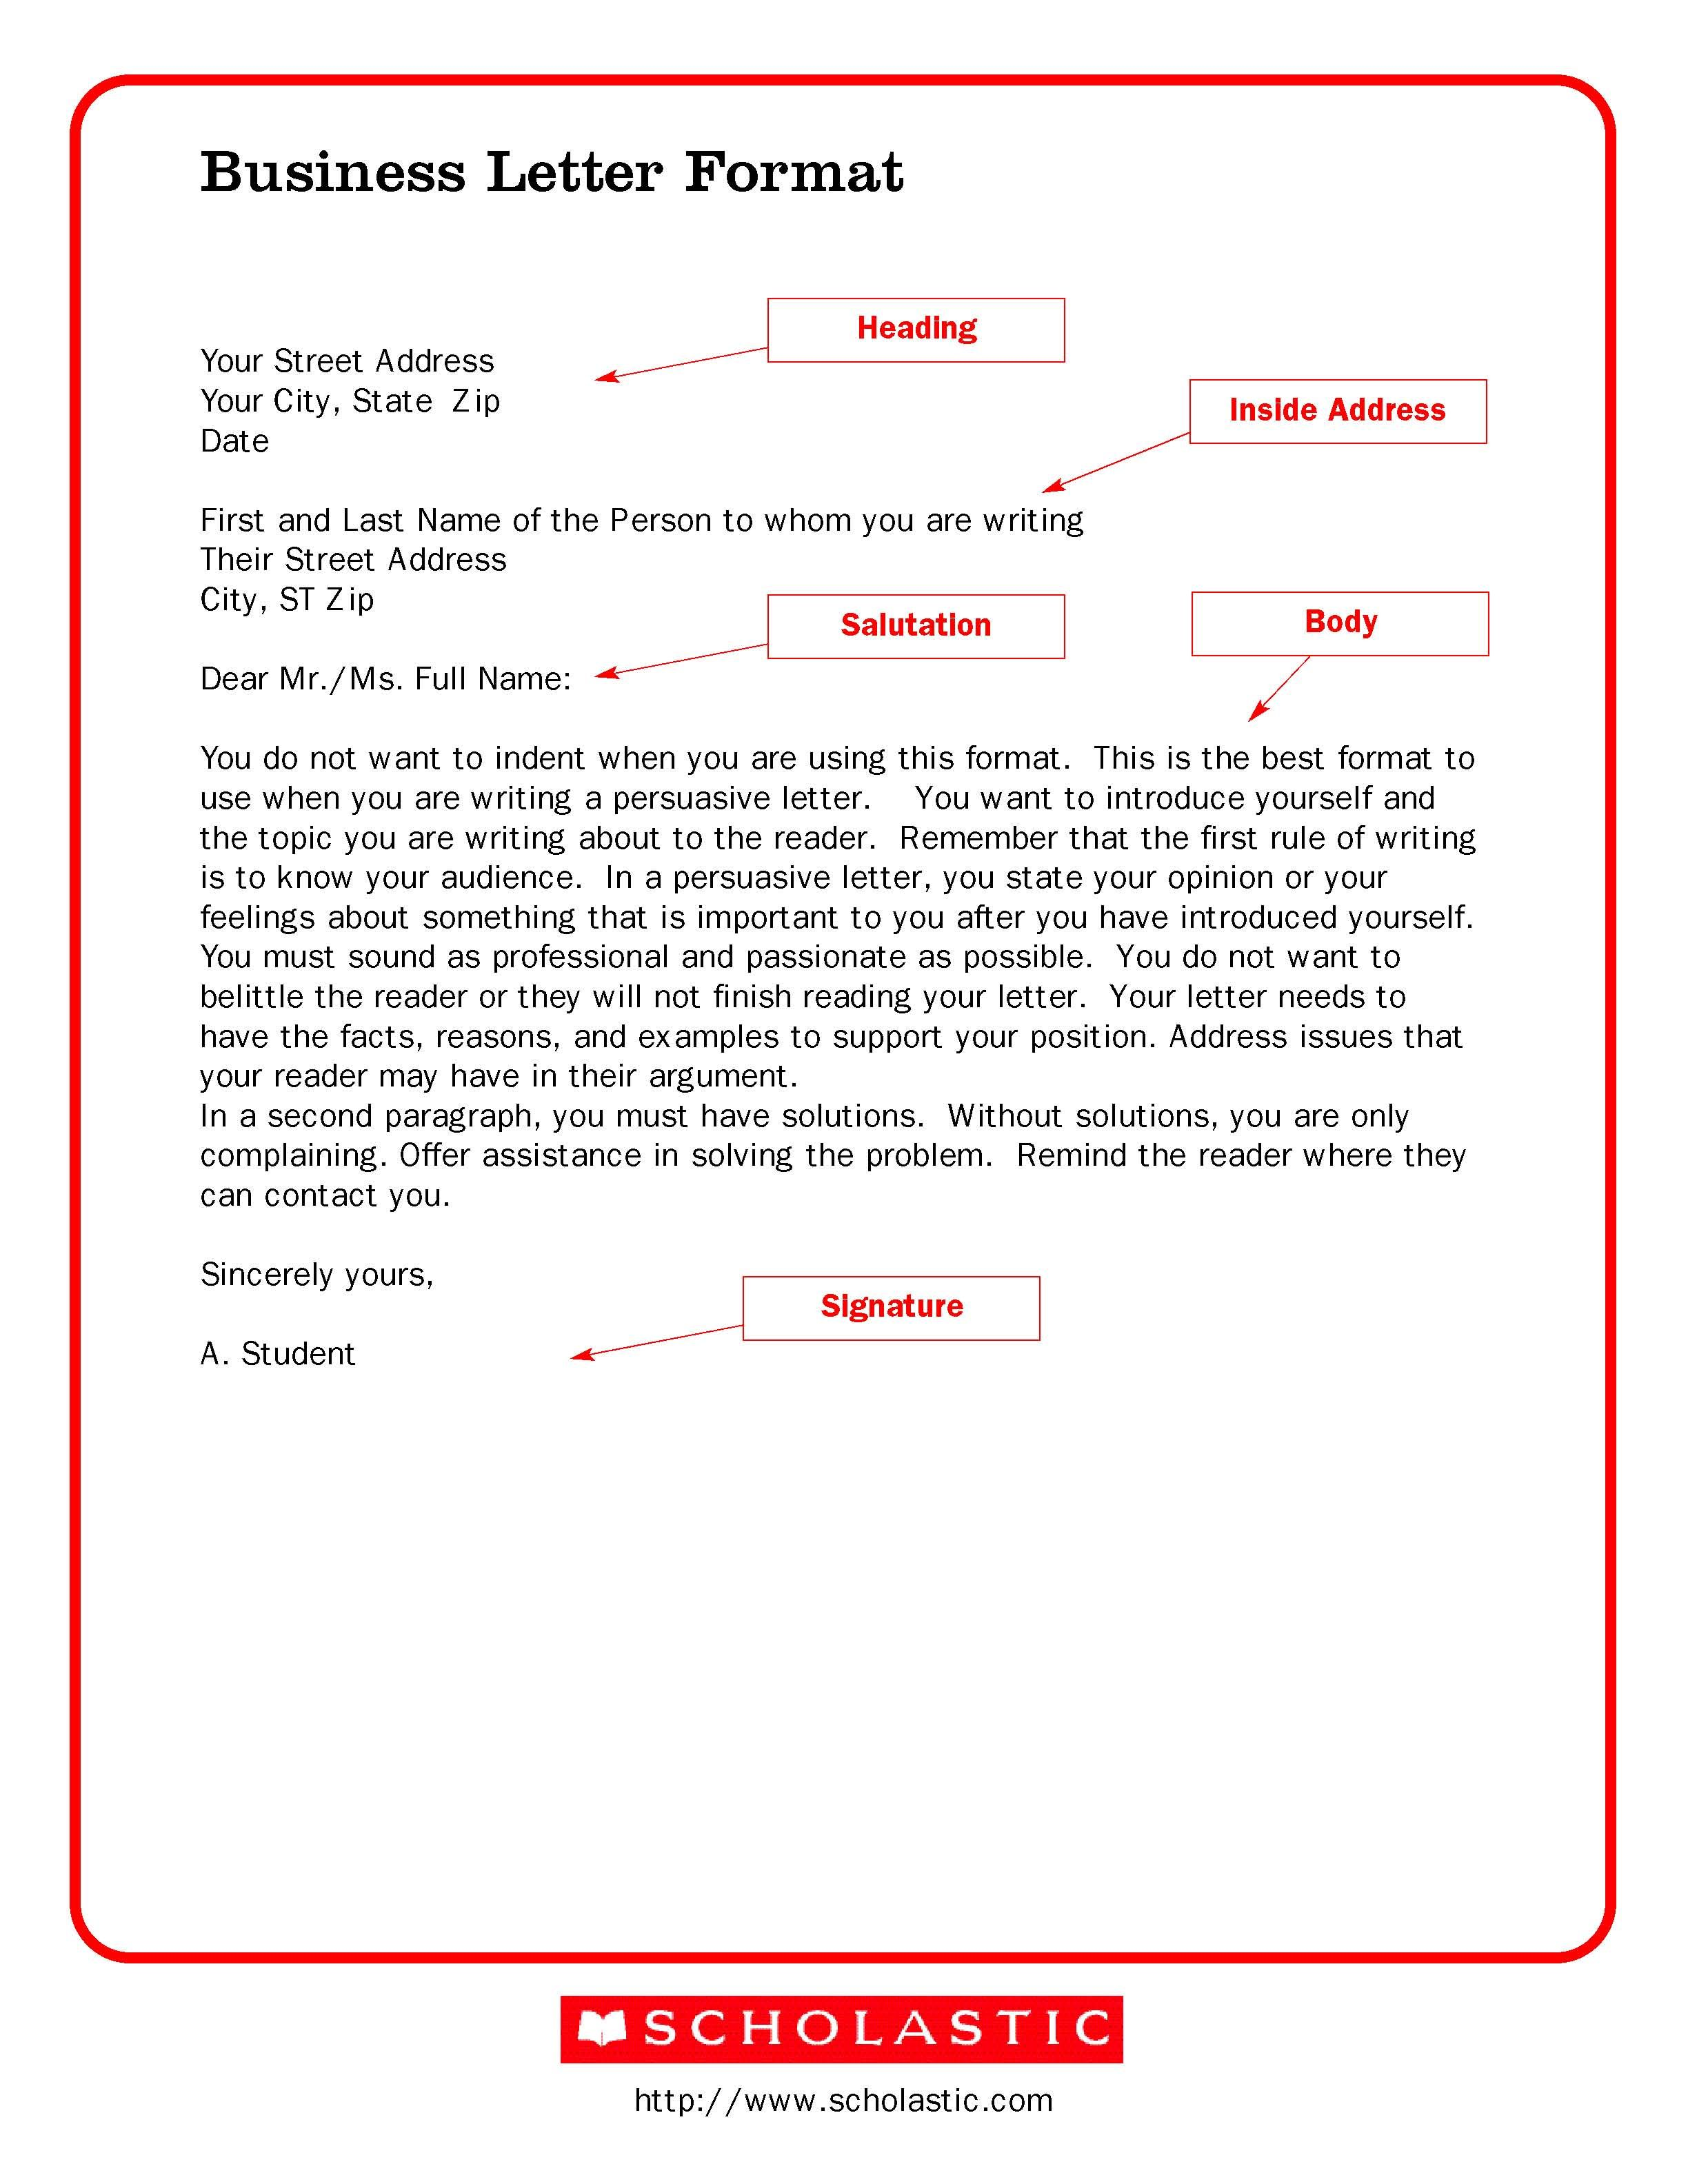 business letter format template koni polycode co